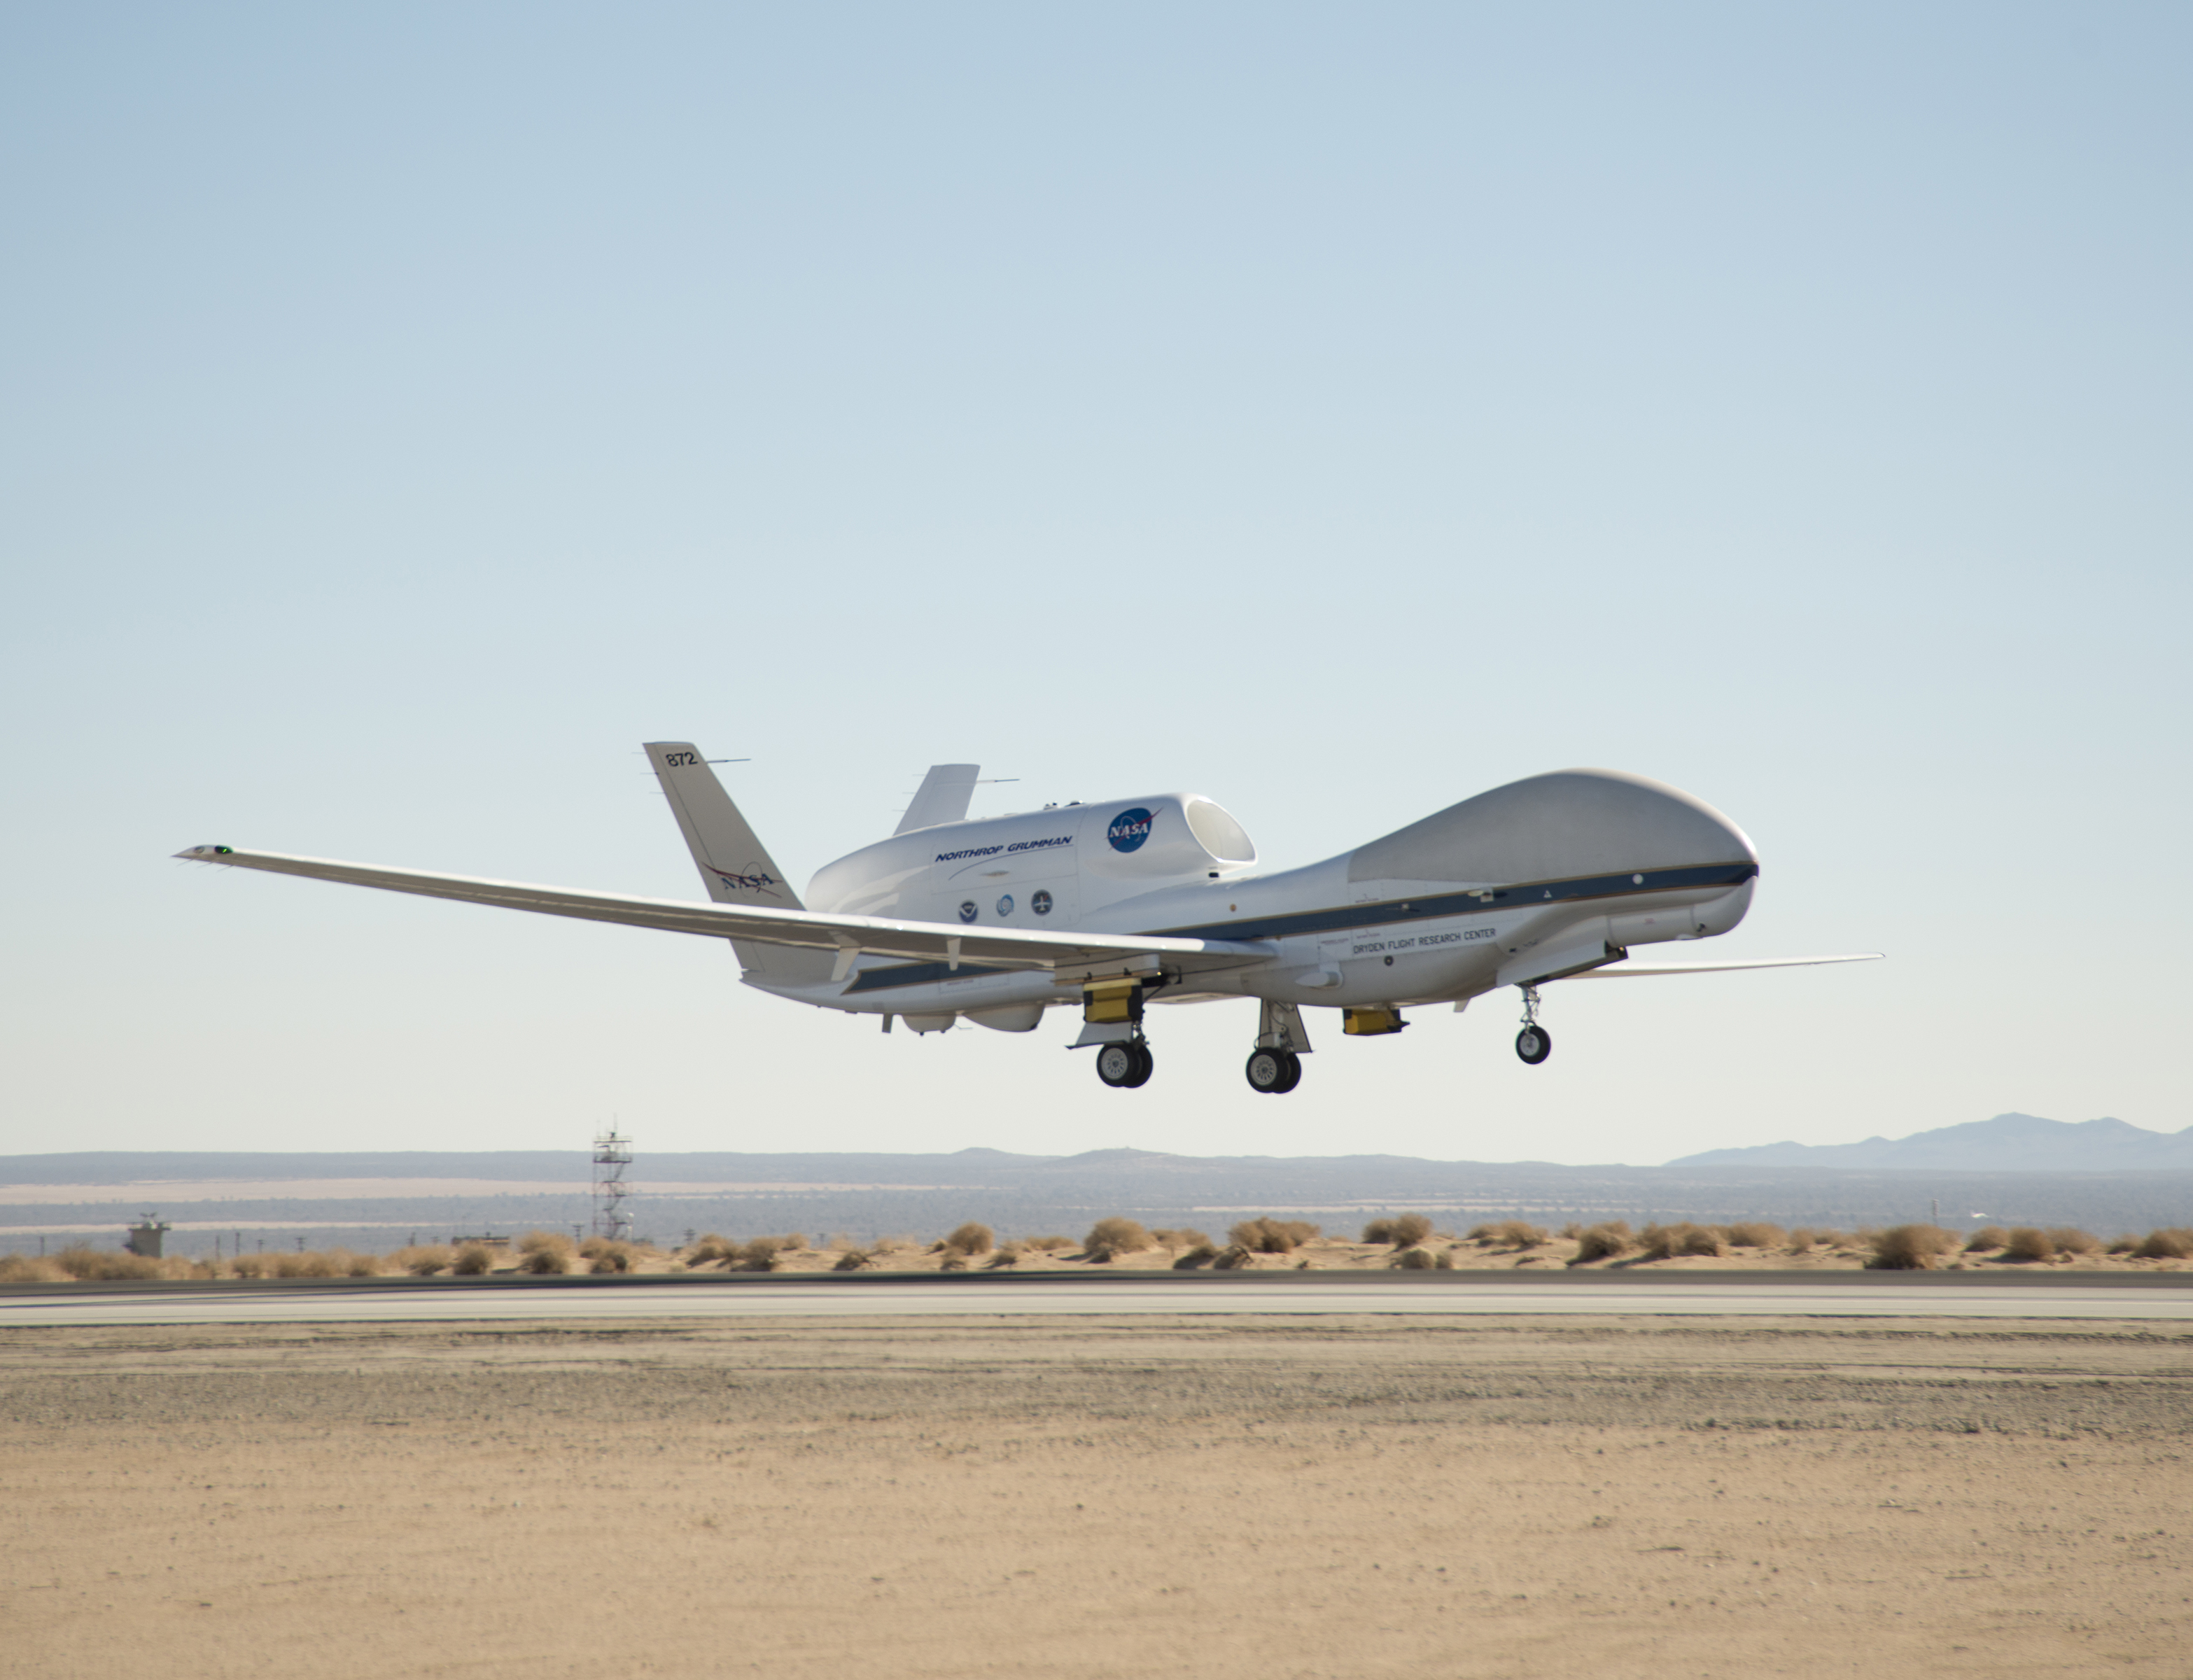 Libya >> NASA Global Hawk Ready for 2014 ATTREX Mission | NASA